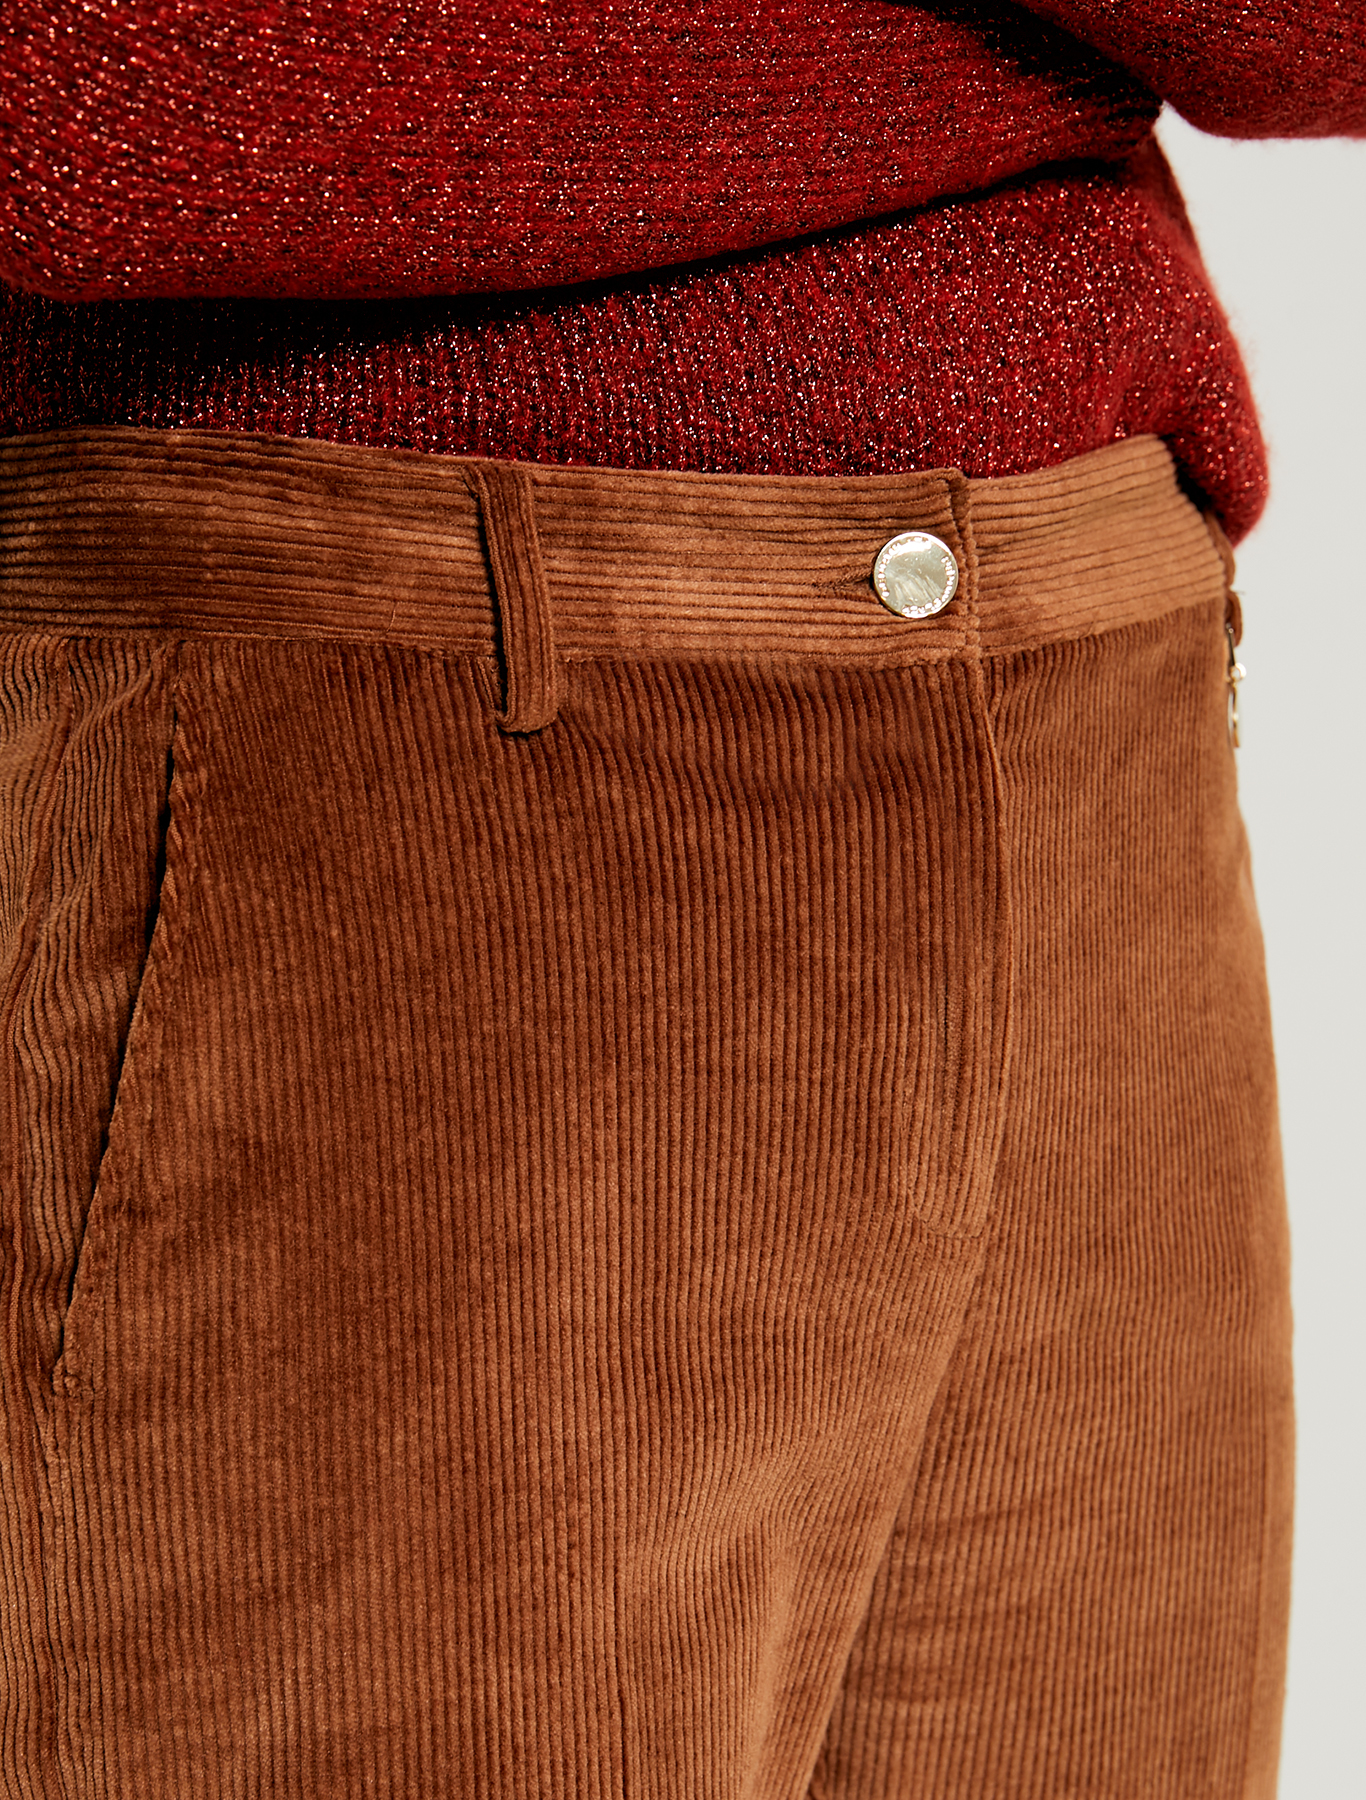 Corduroy trousers - brown - pennyblack